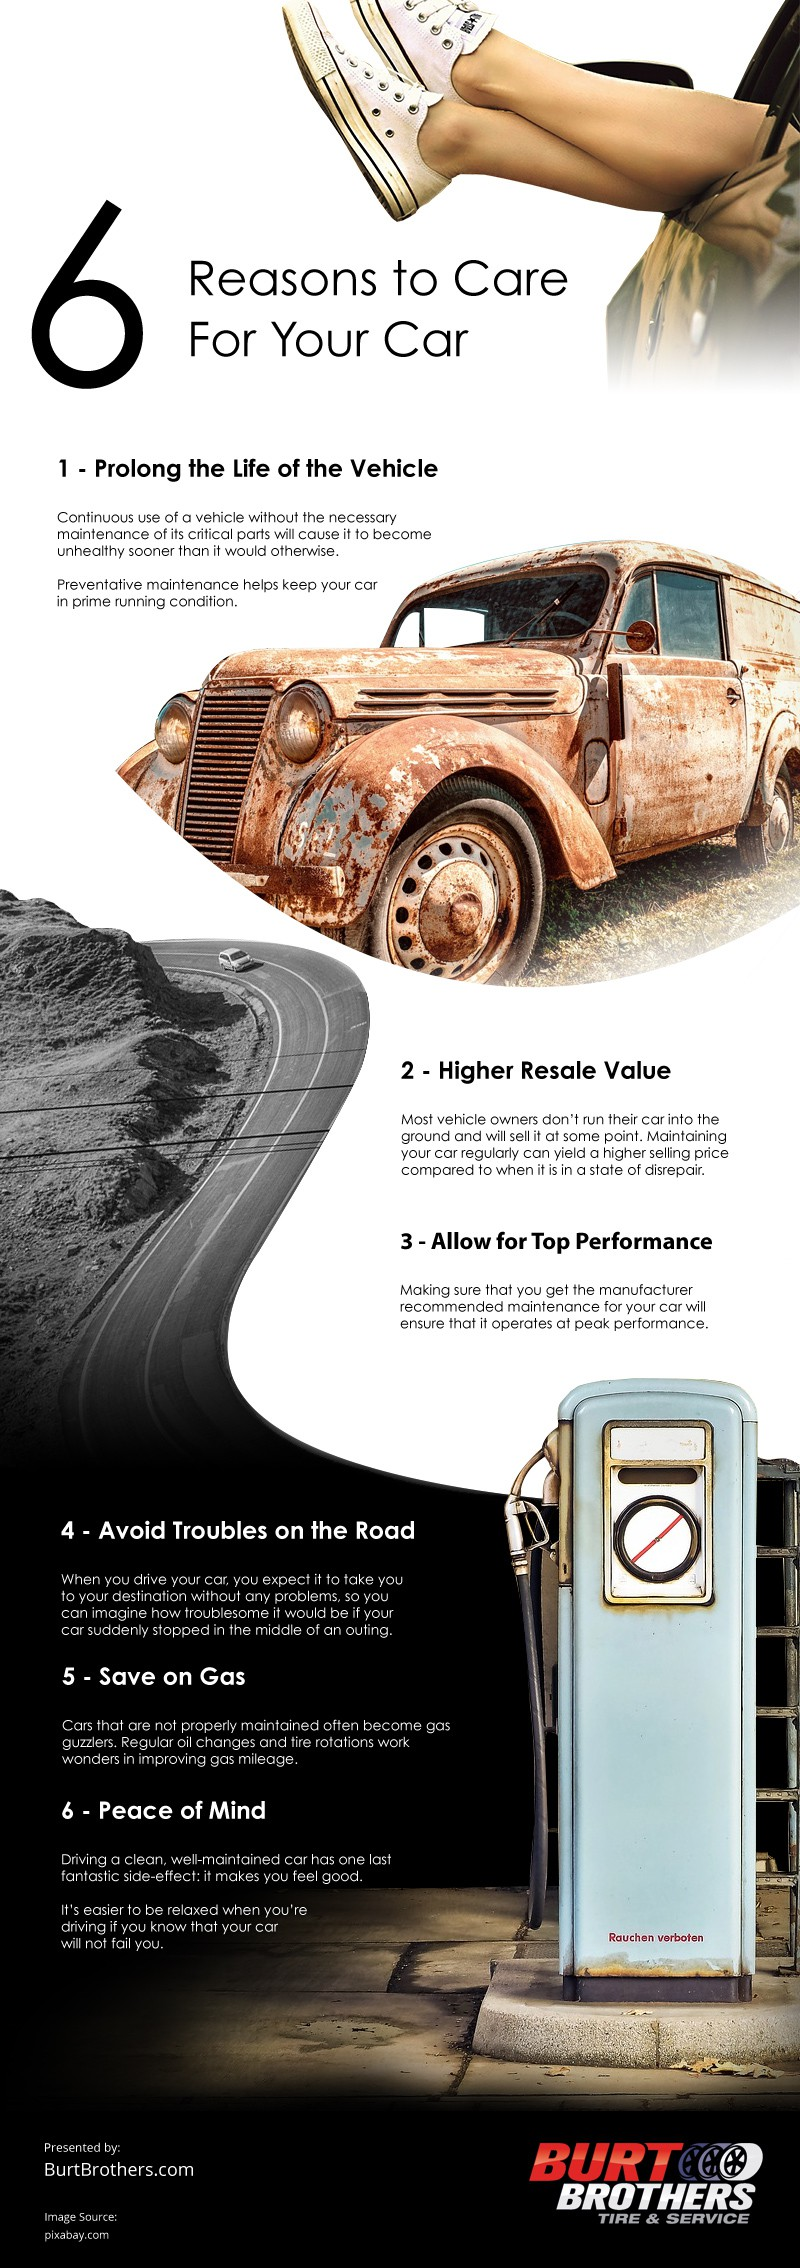 6 Reasons to Care for Your Car [infographic]